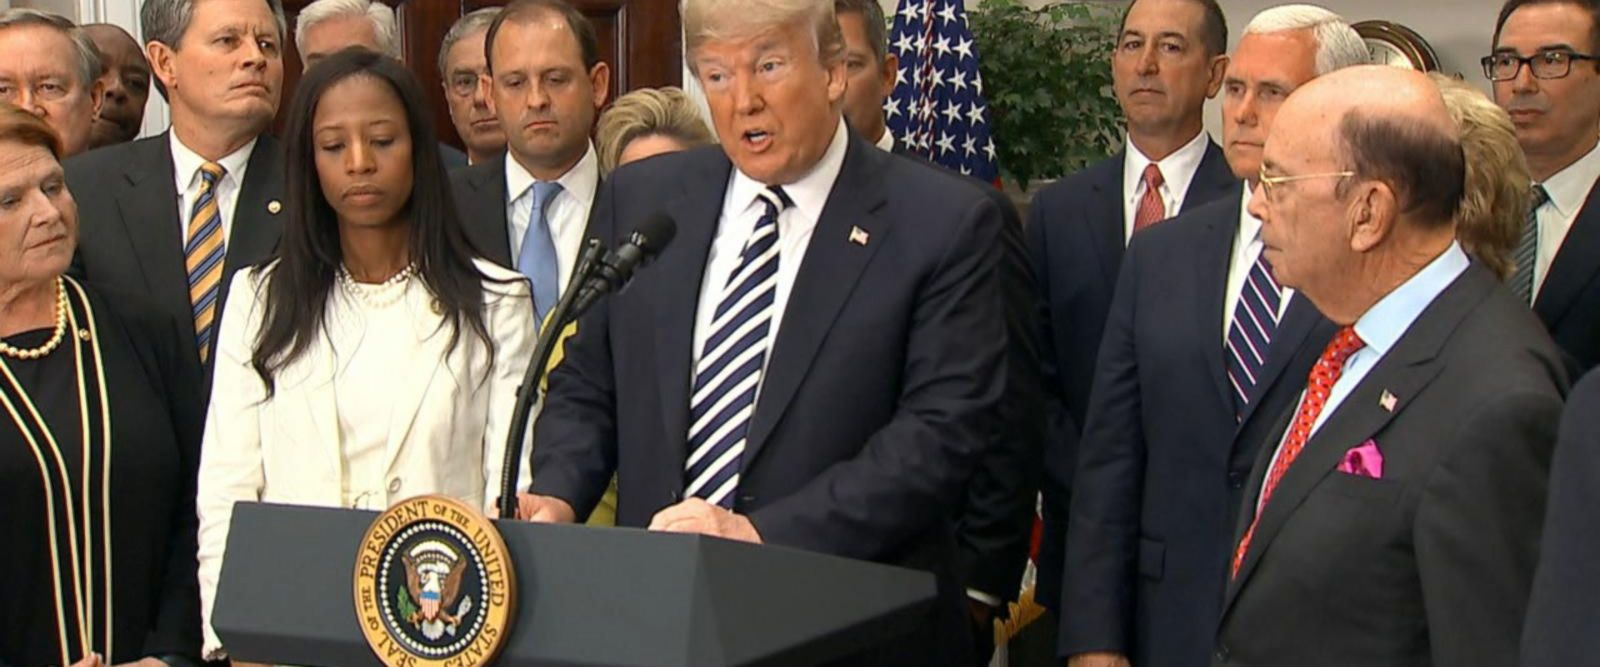 VIDEO: Trump cancels summit, pointing to NK's 'anger and open hostility'